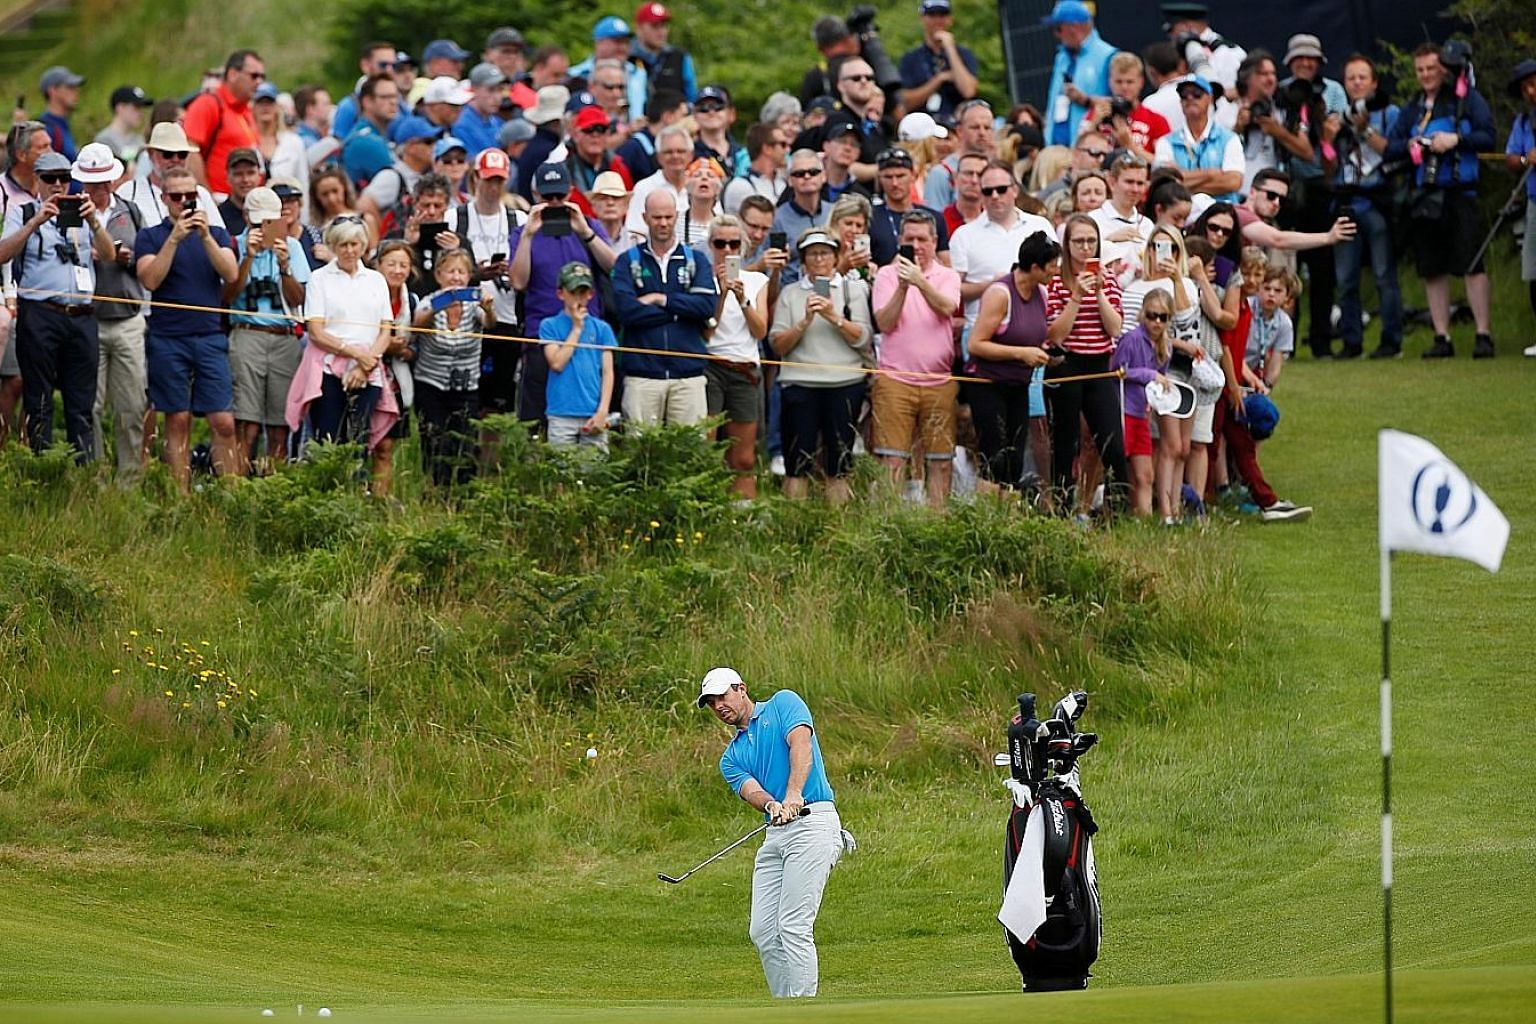 World No. 3 and home favourite Rory McIlroy watched by a sizeable crowd as he hits a chip during a practice session at Royal Portrush Golf Club in Northern Ireland yesterday.